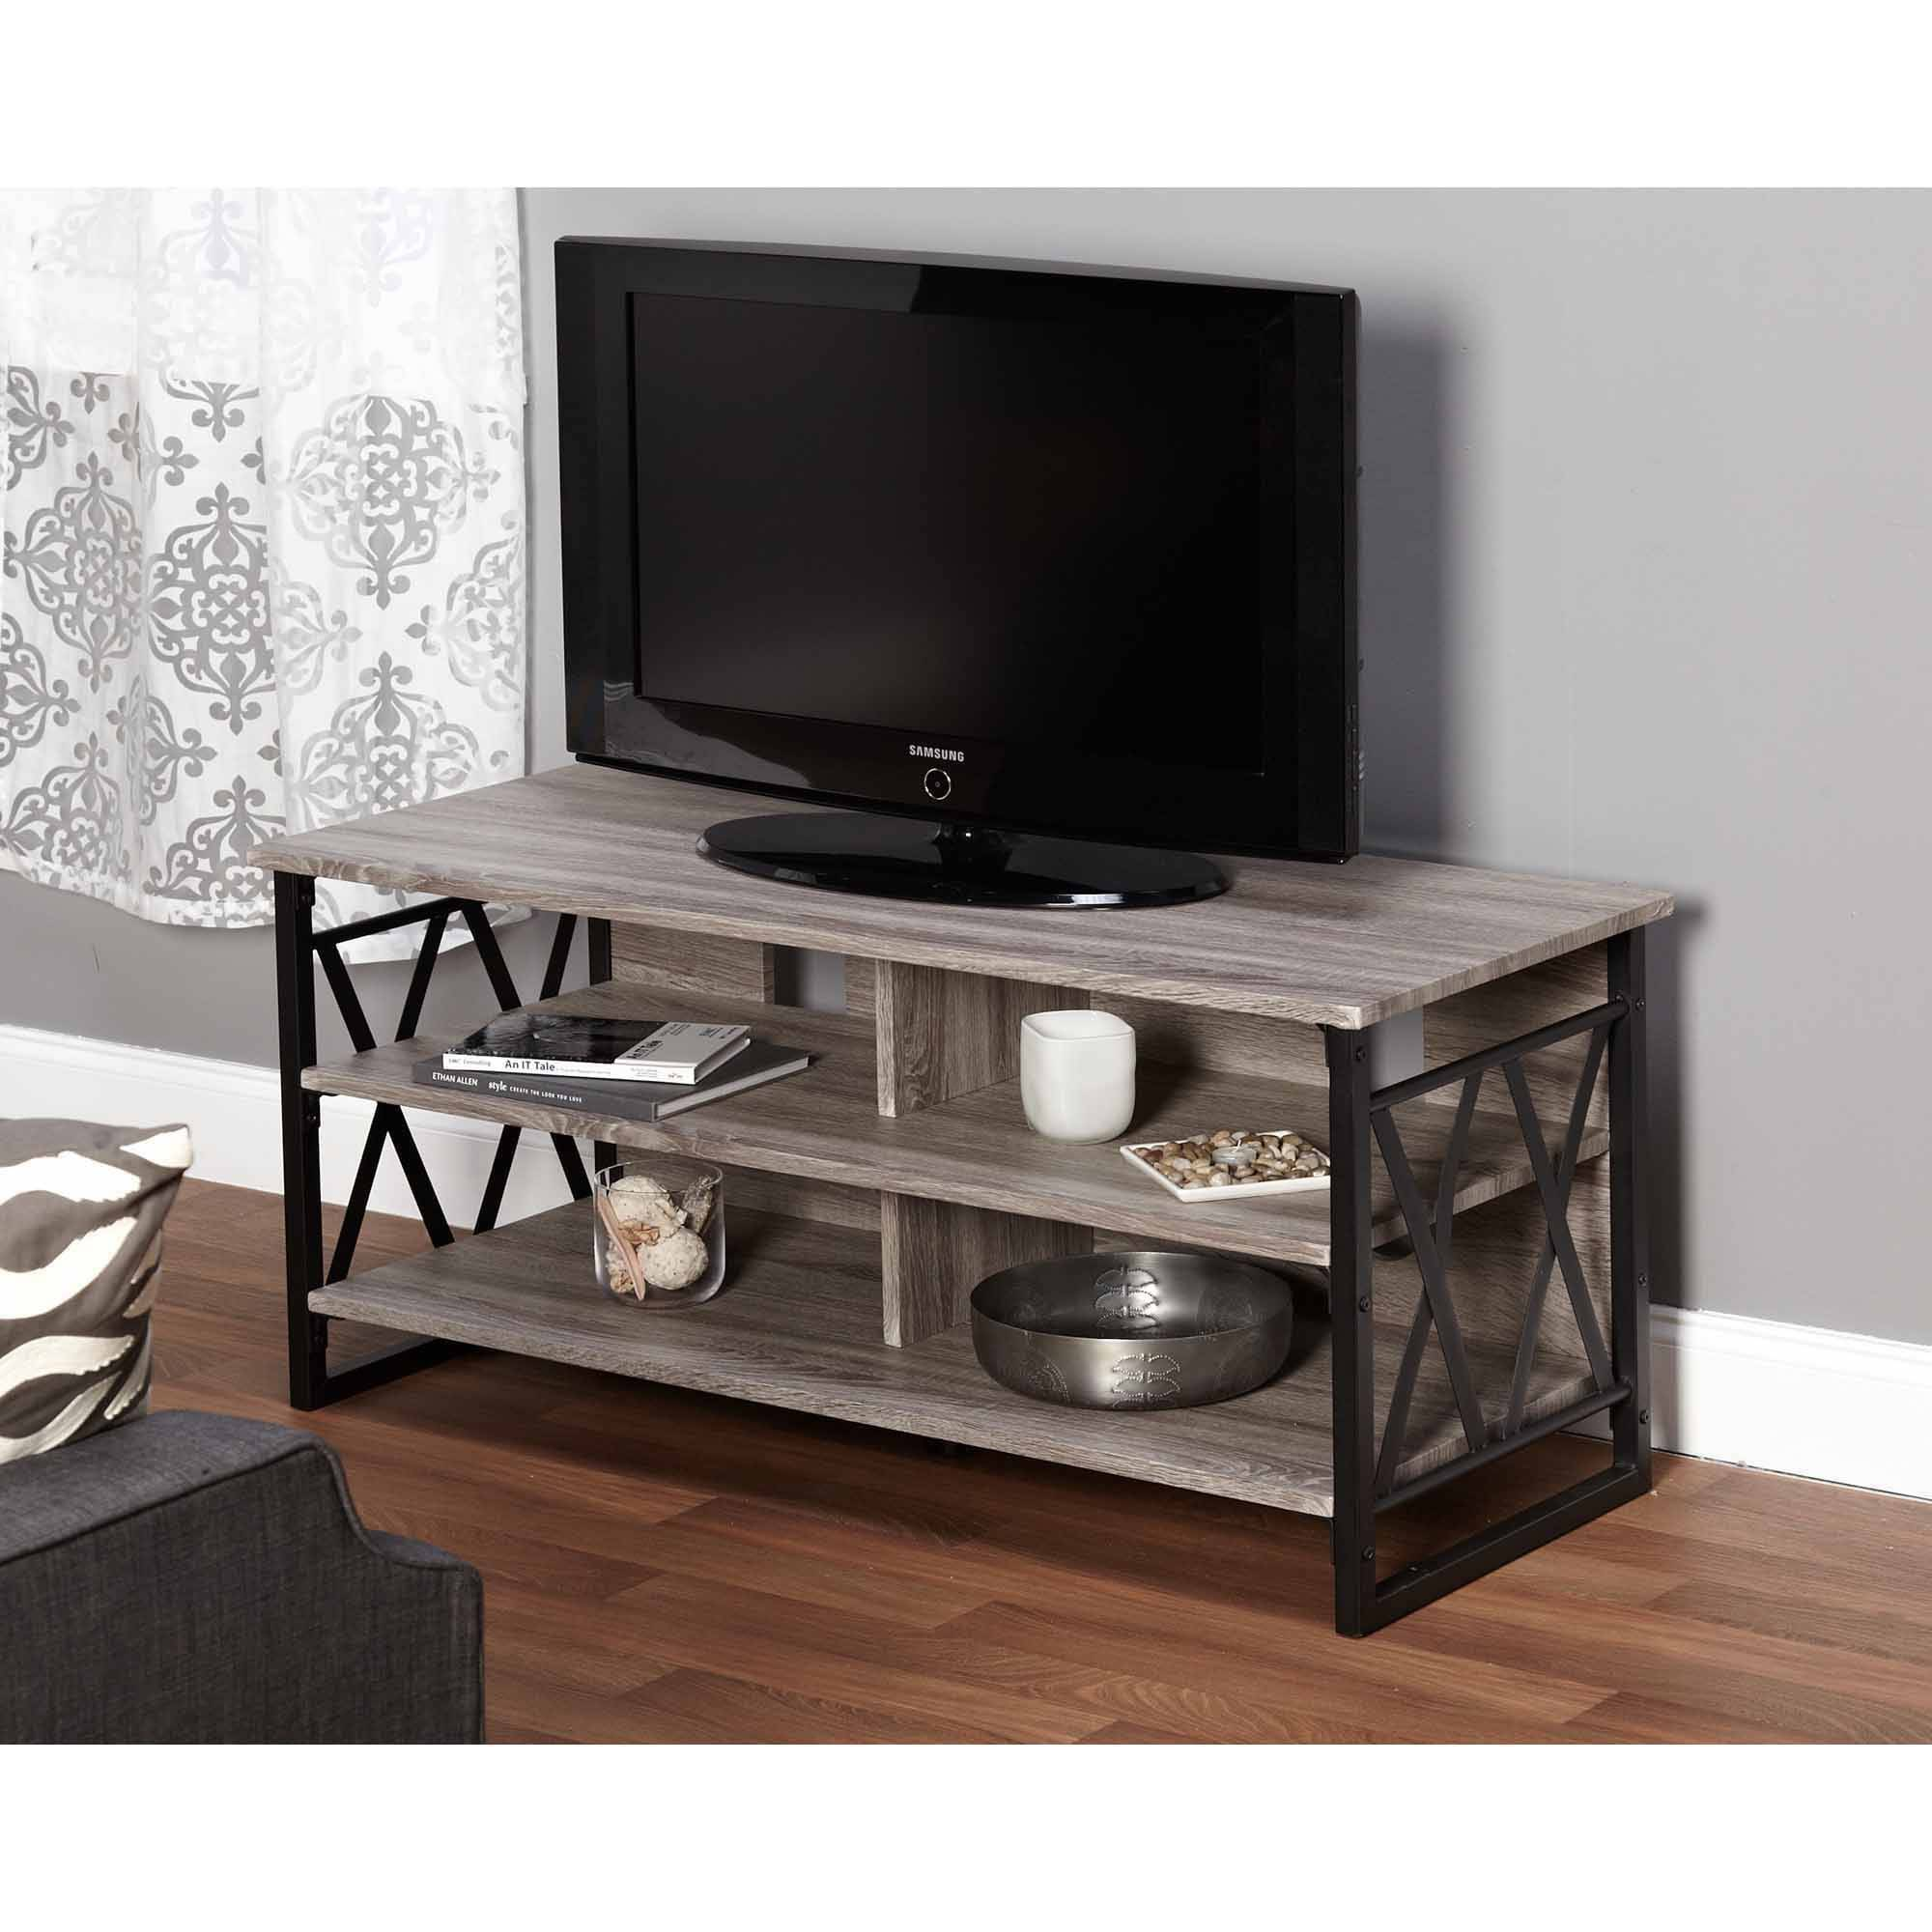 Jaxx Collection Tv Stand For Tvs Up To 48 Multiple Finishes Ebay